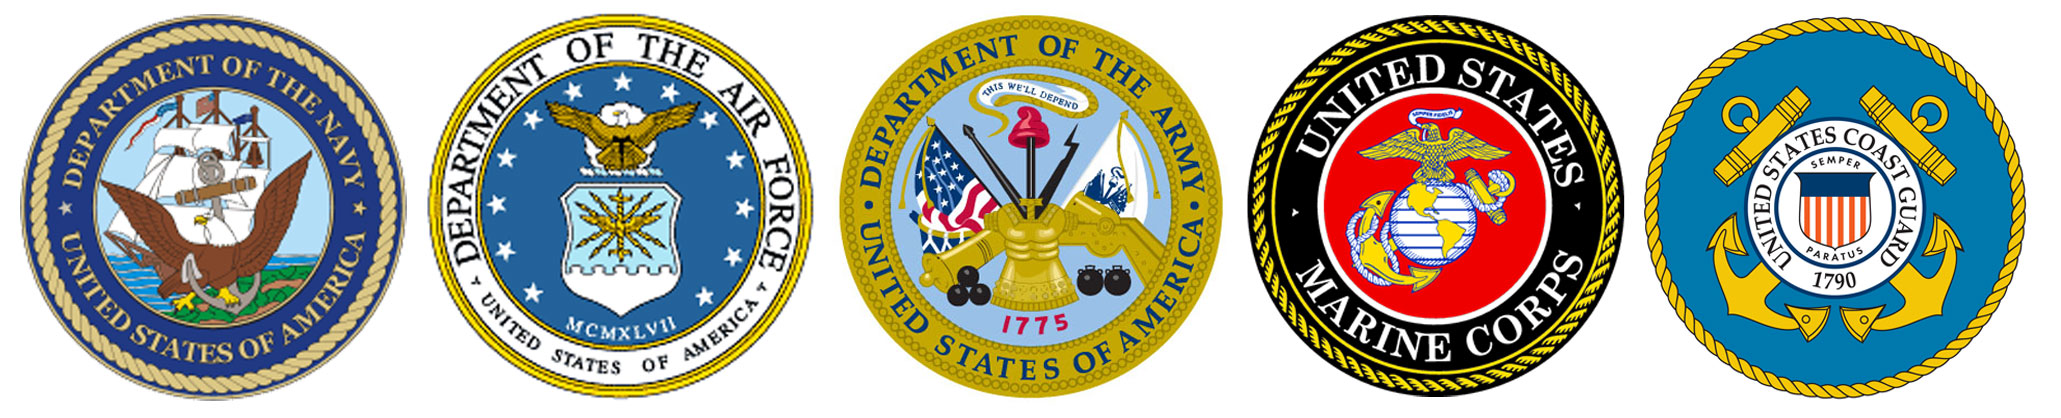 Military Seals Clipart.